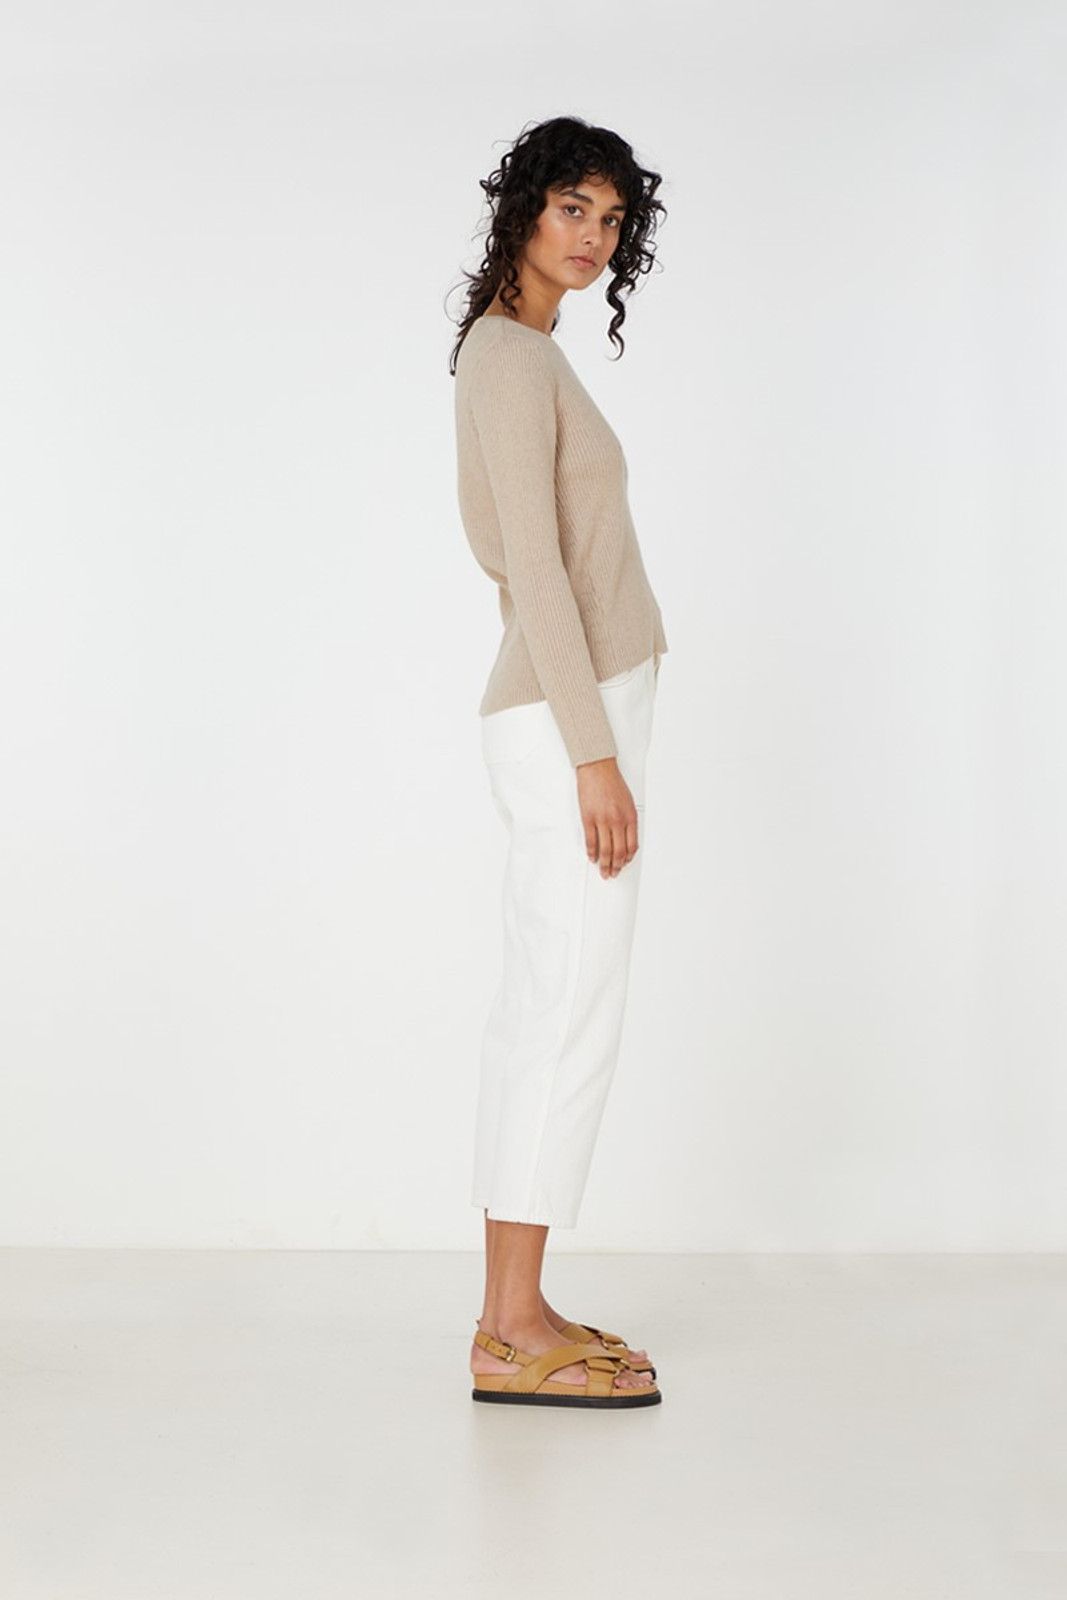 Elka Collective Houston Knit Neutrals  3